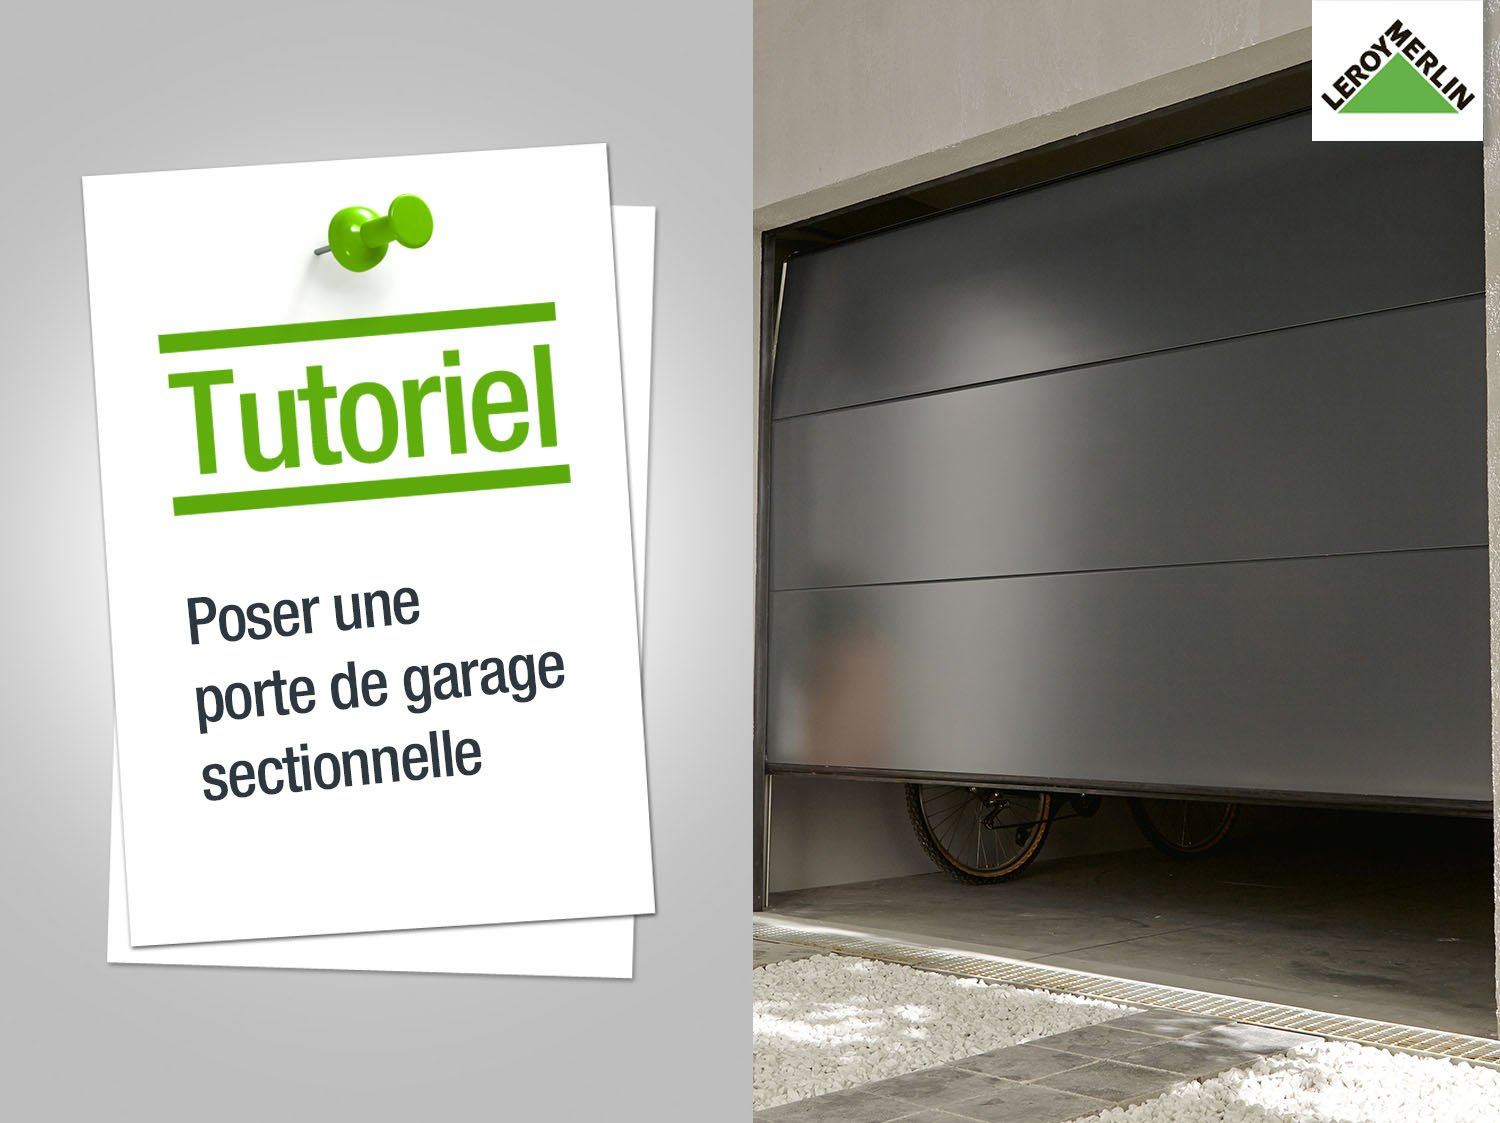 Porte de garage sectionnelle leroy merlin sur mesure - Porte de garage coulissante motorisee leroy merlin ...